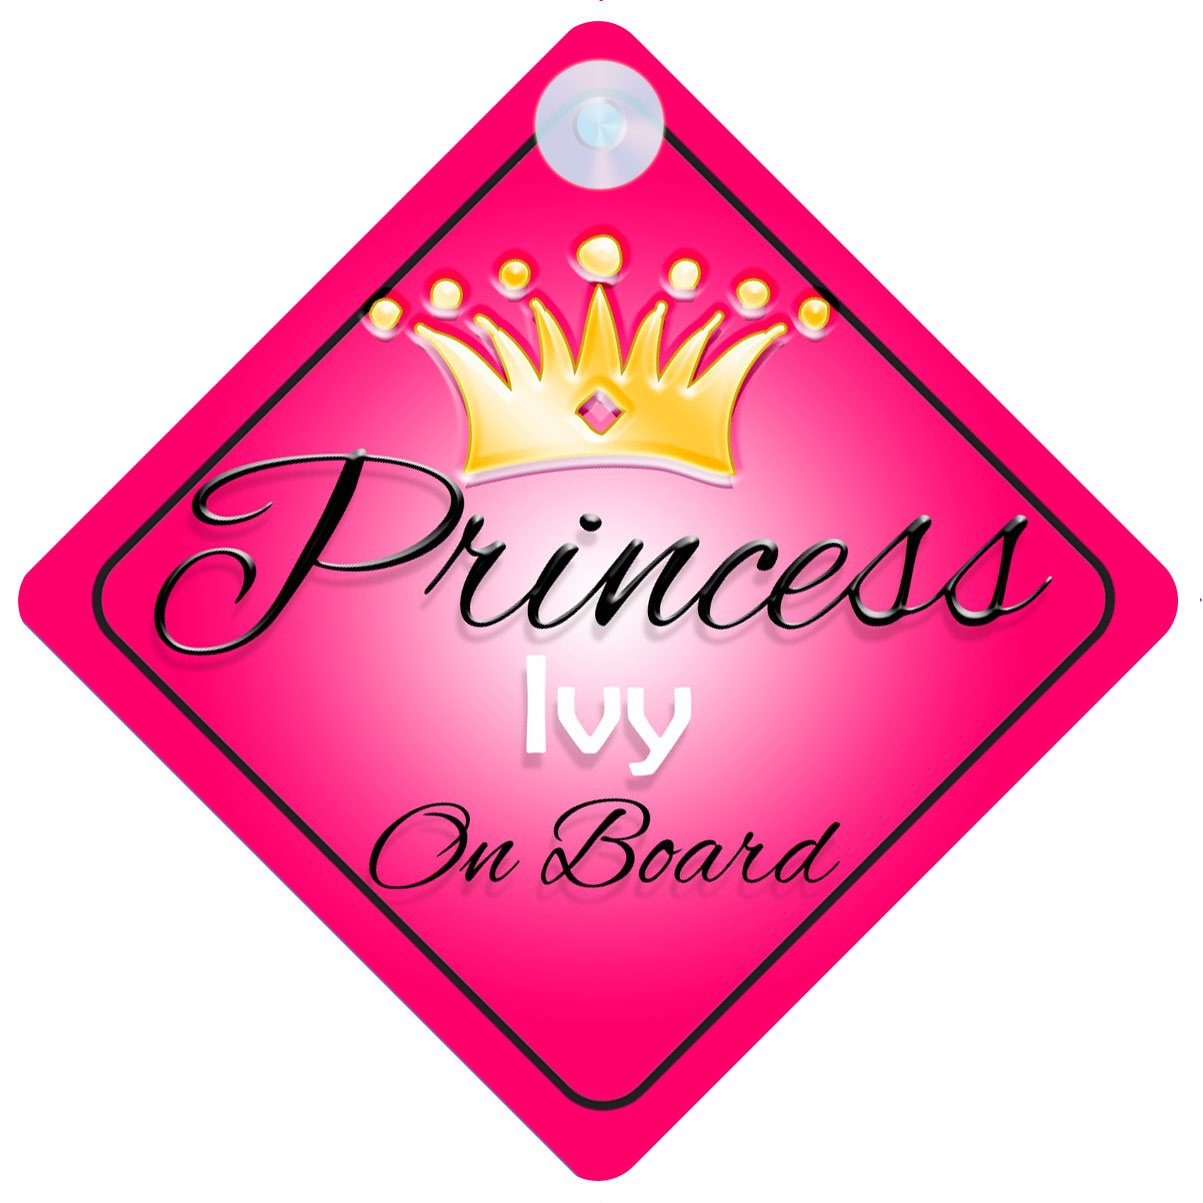 Princess Ivy On Board Personalised Girl Car Sign Baby / Child Gift 001 Quality Goods Ltd